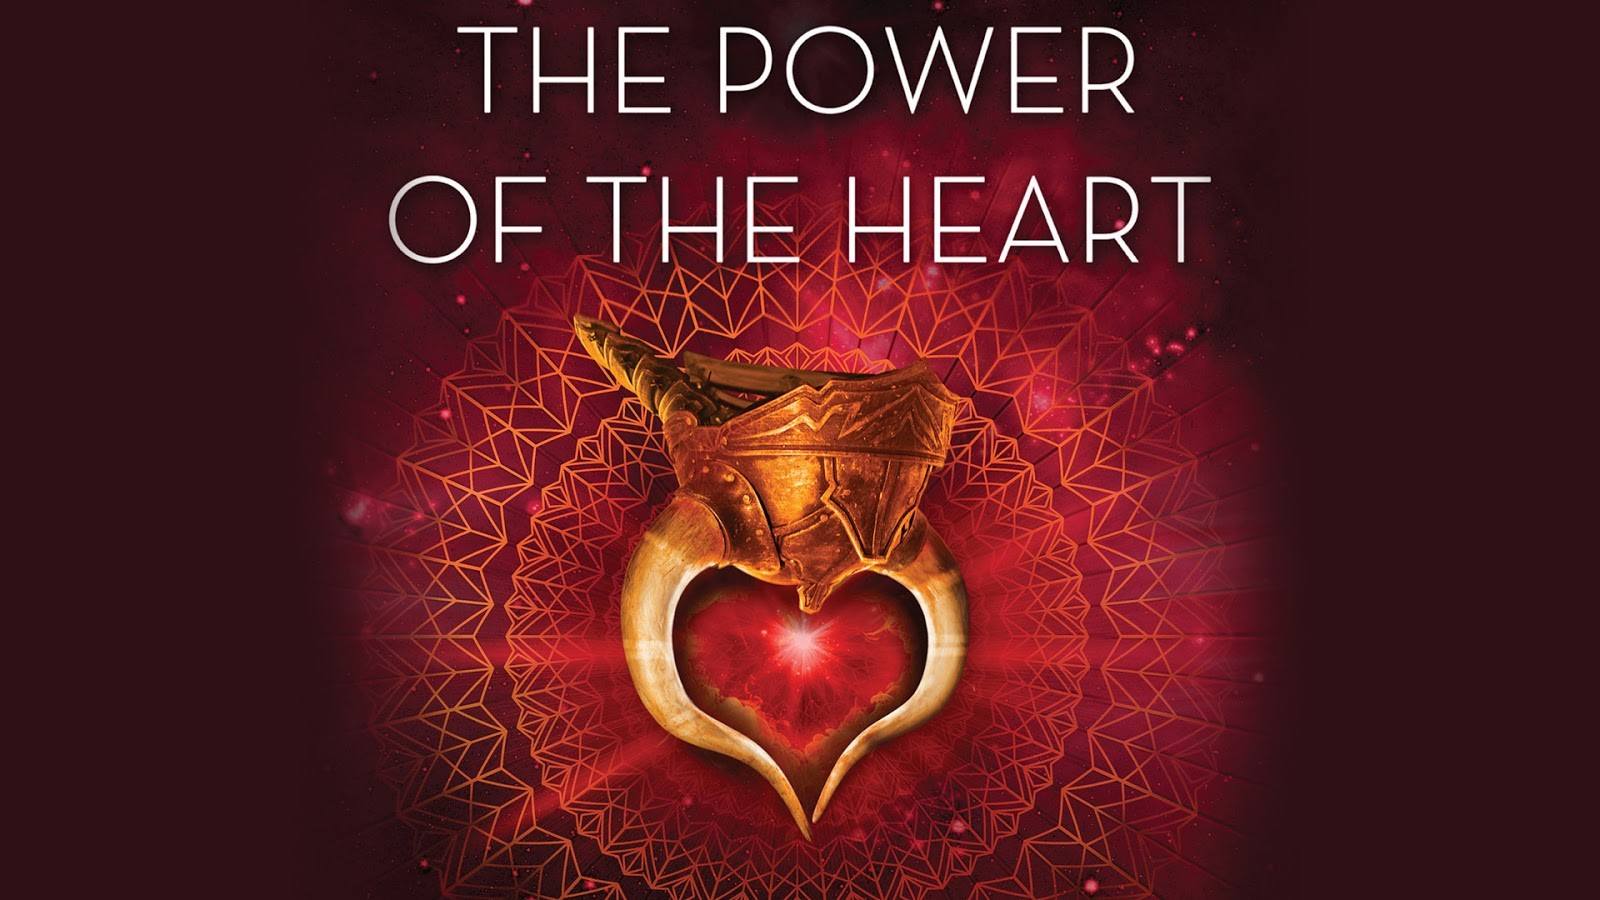 September Film Club: The Power of The Heart